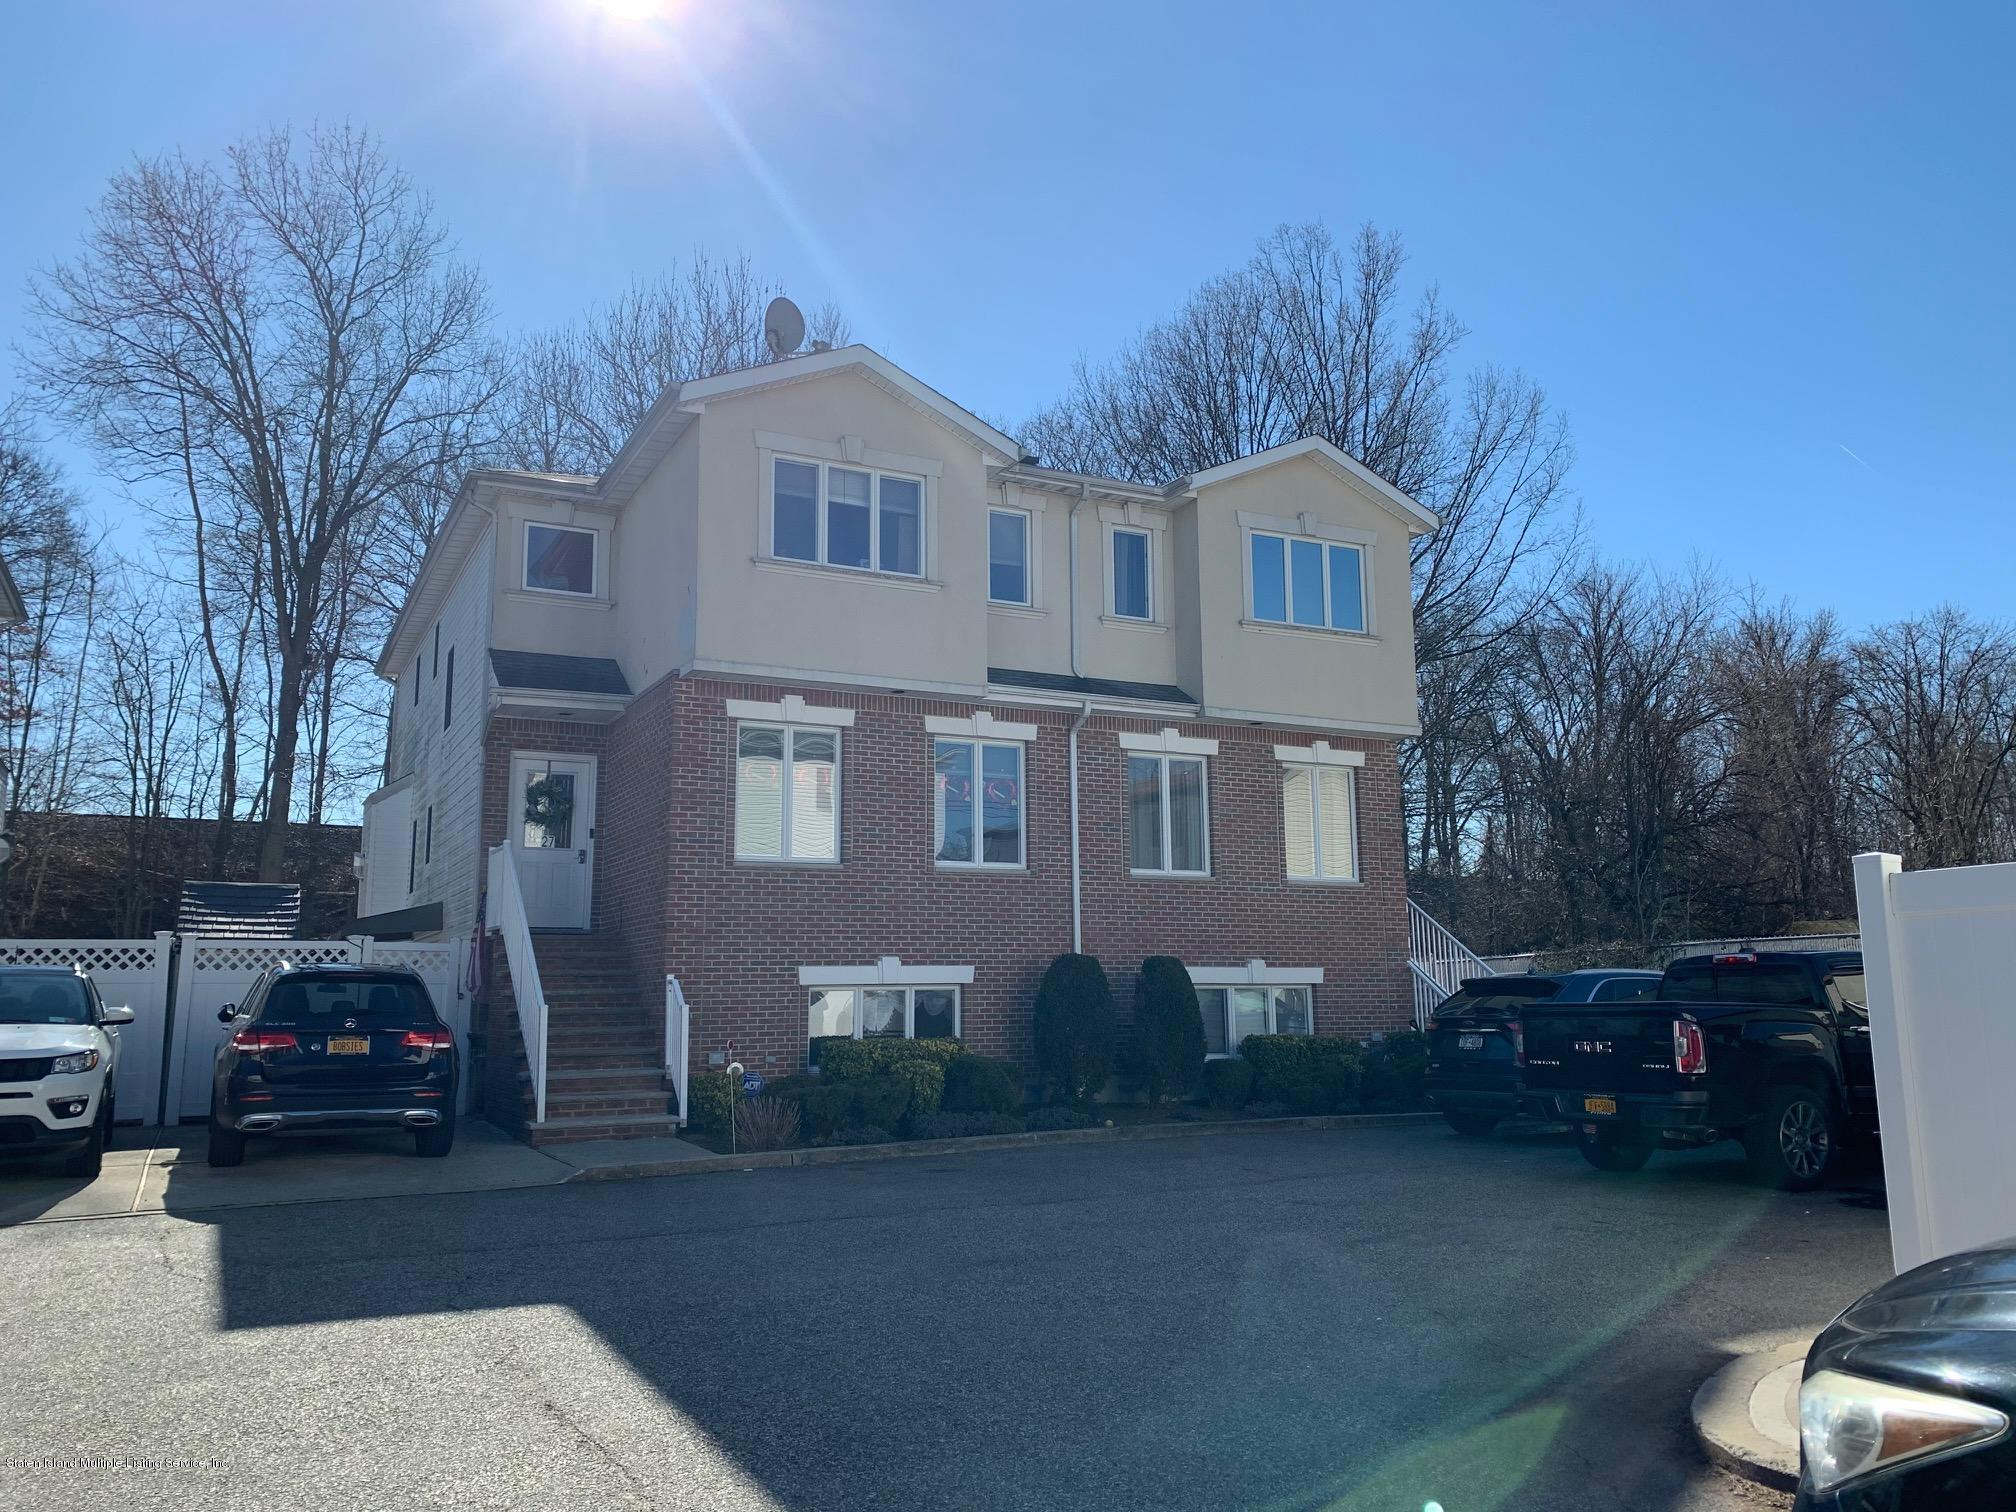 Single Family - Semi-Attached 29 Coco Court  Staten Island, NY 10312, MLS-1135689-11